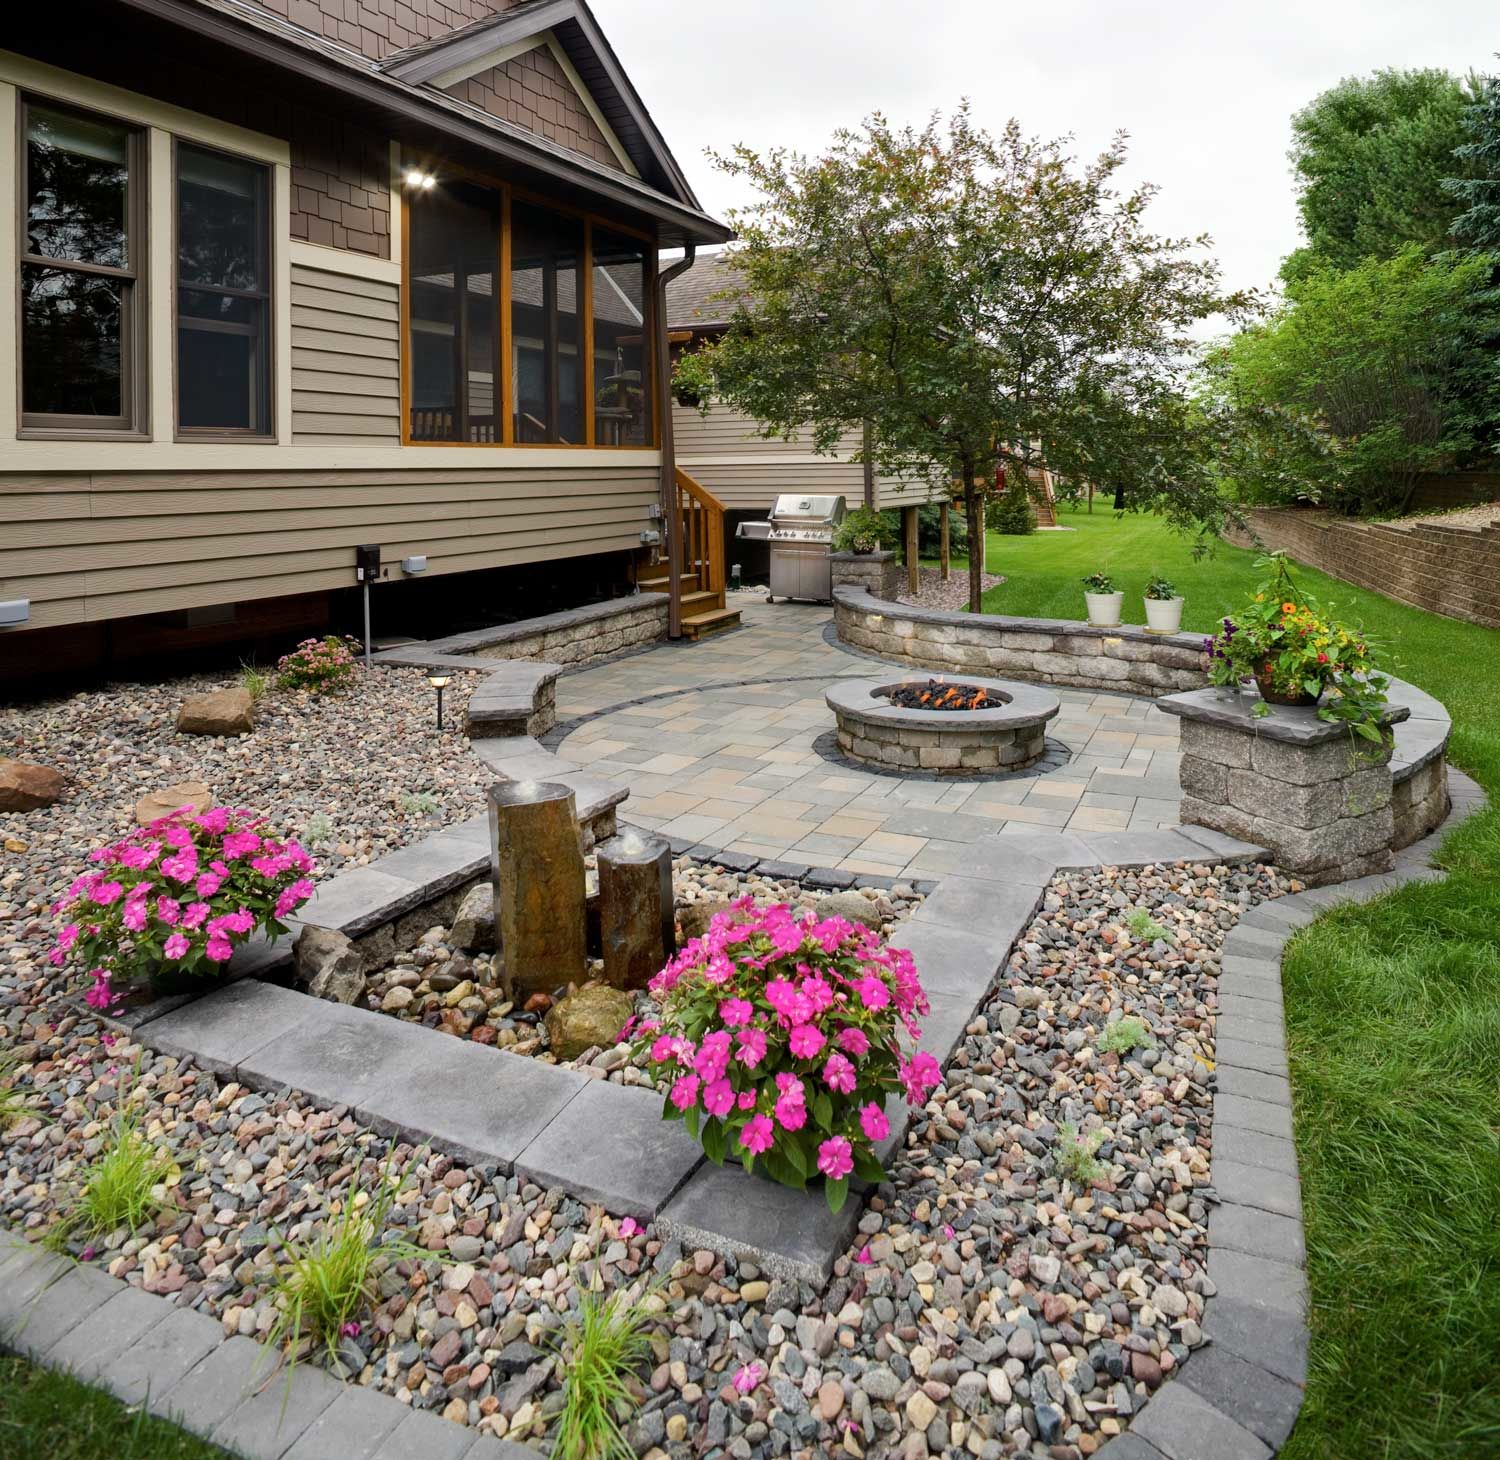 Sit back and relax on a beautiful, maintenance-free paver patio